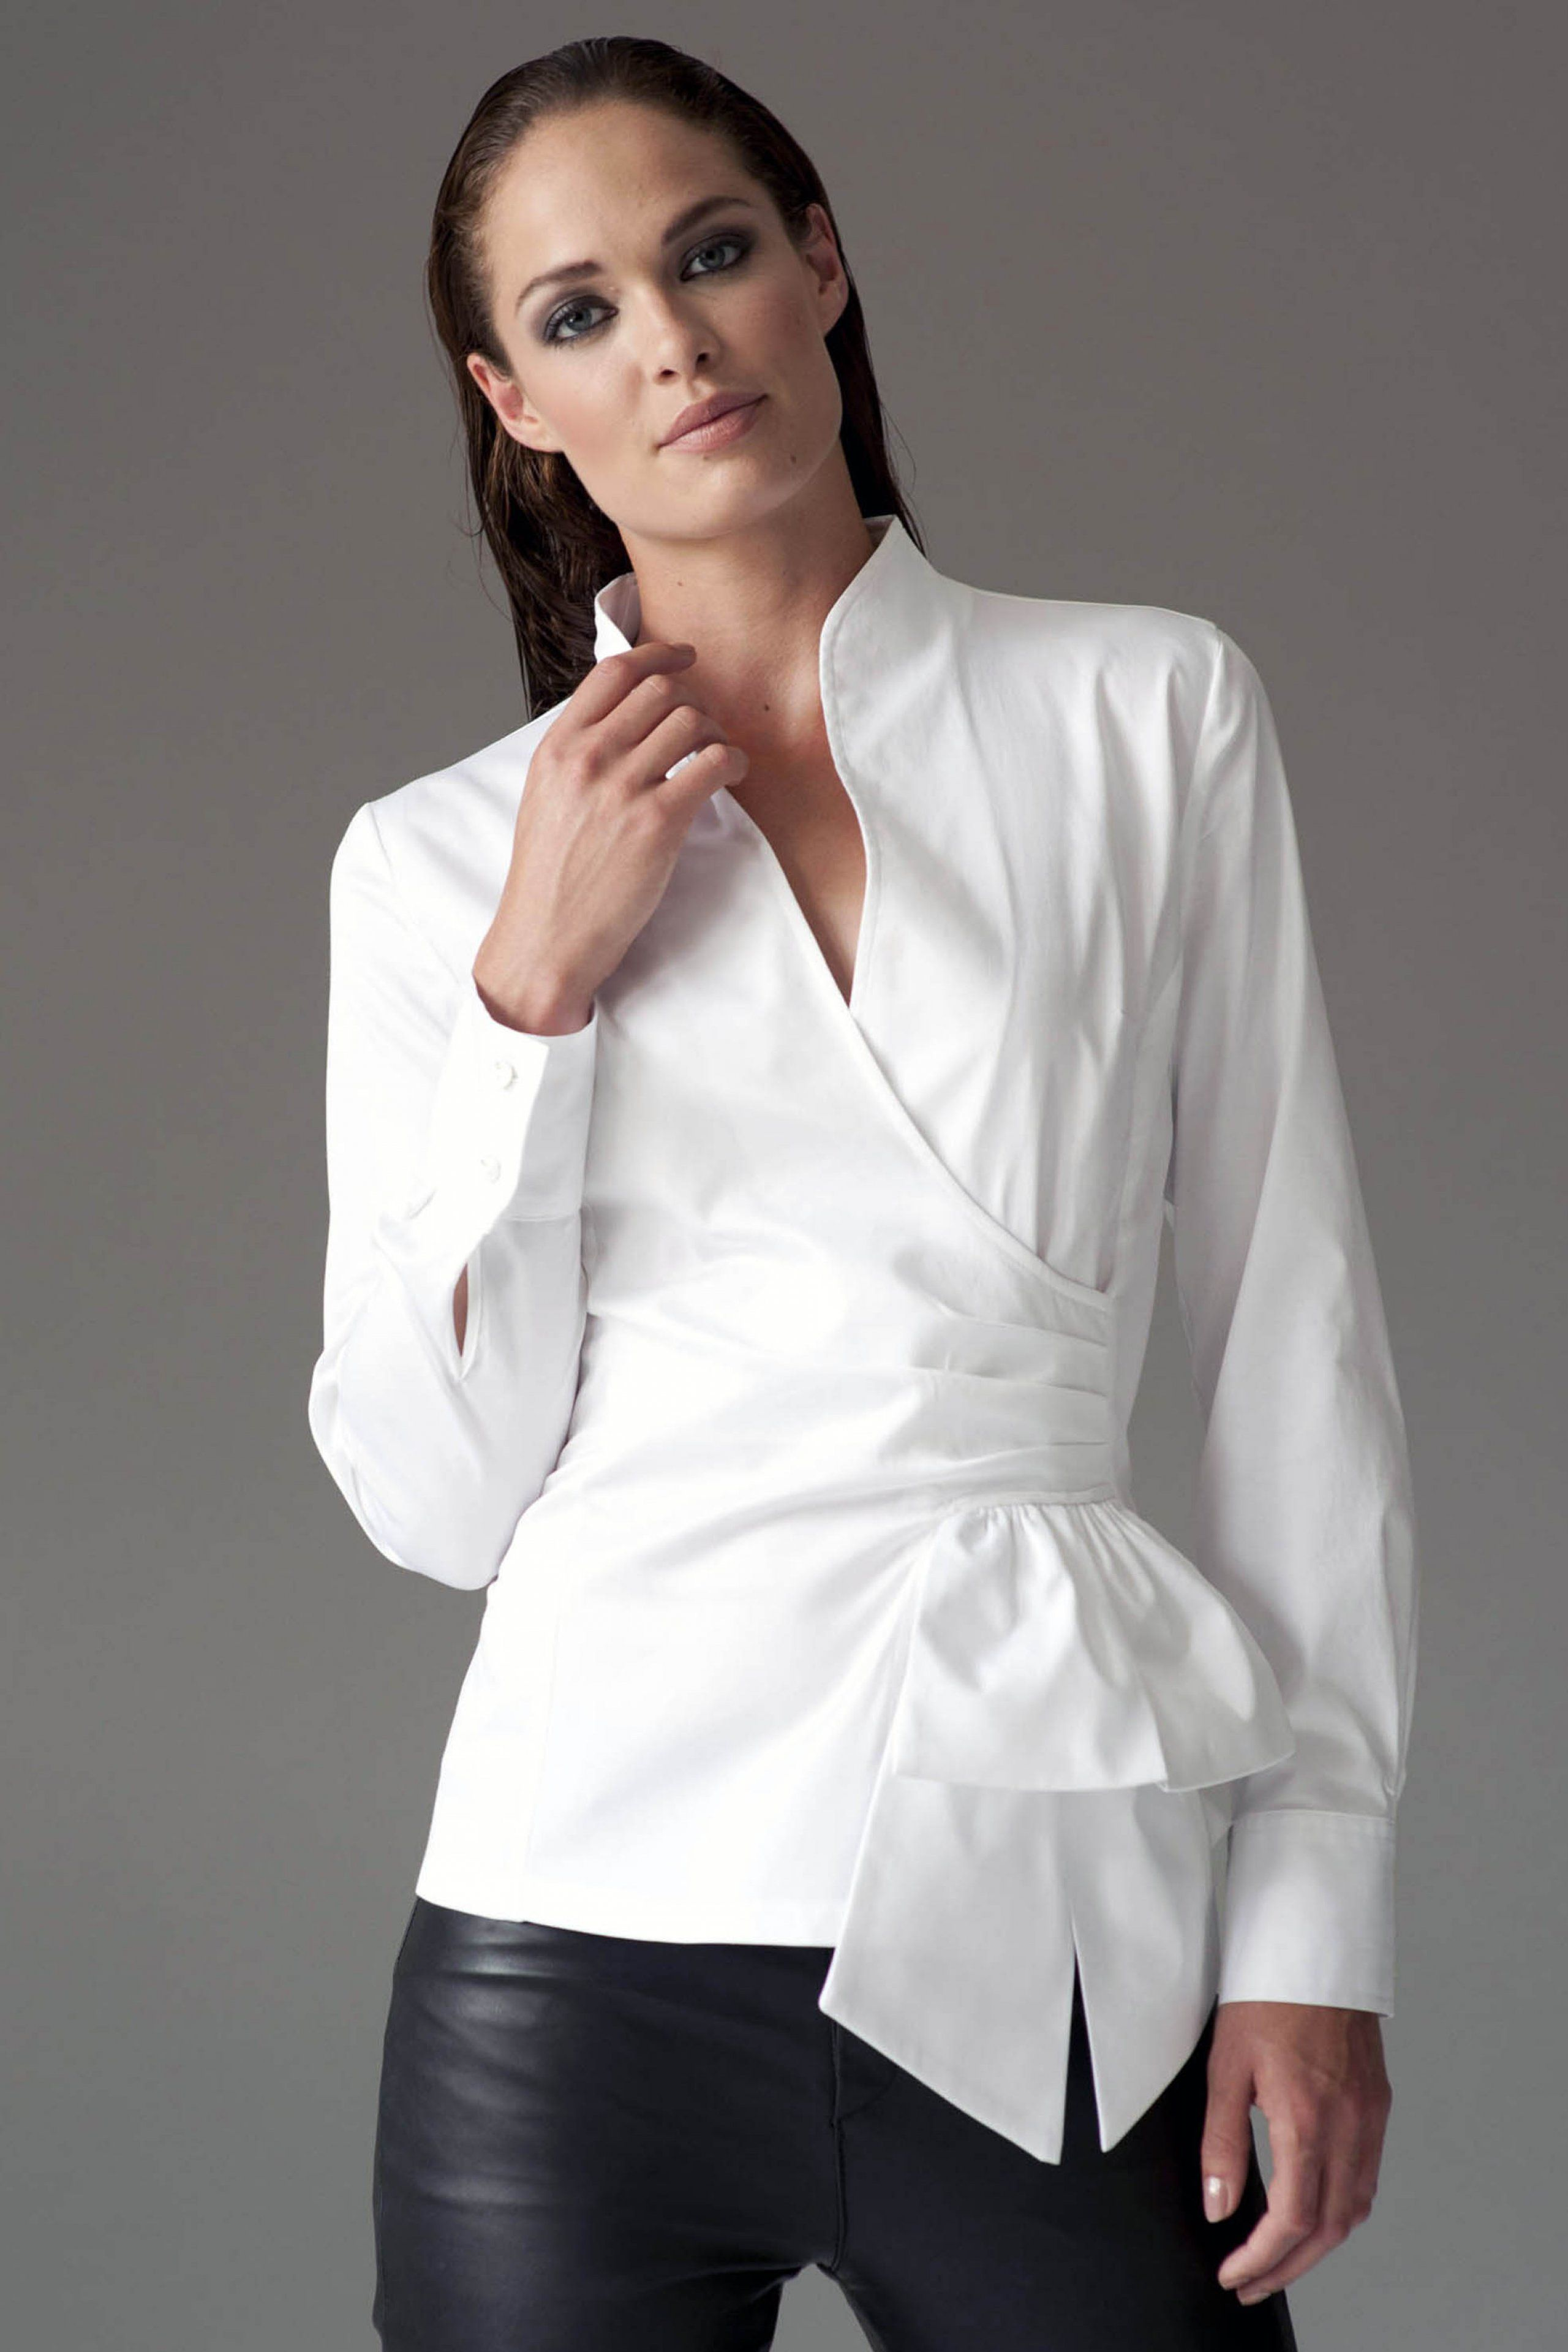 319ac98882b The Perfect White Shirt - By The Shirt Company - Avalon   Kelly ...